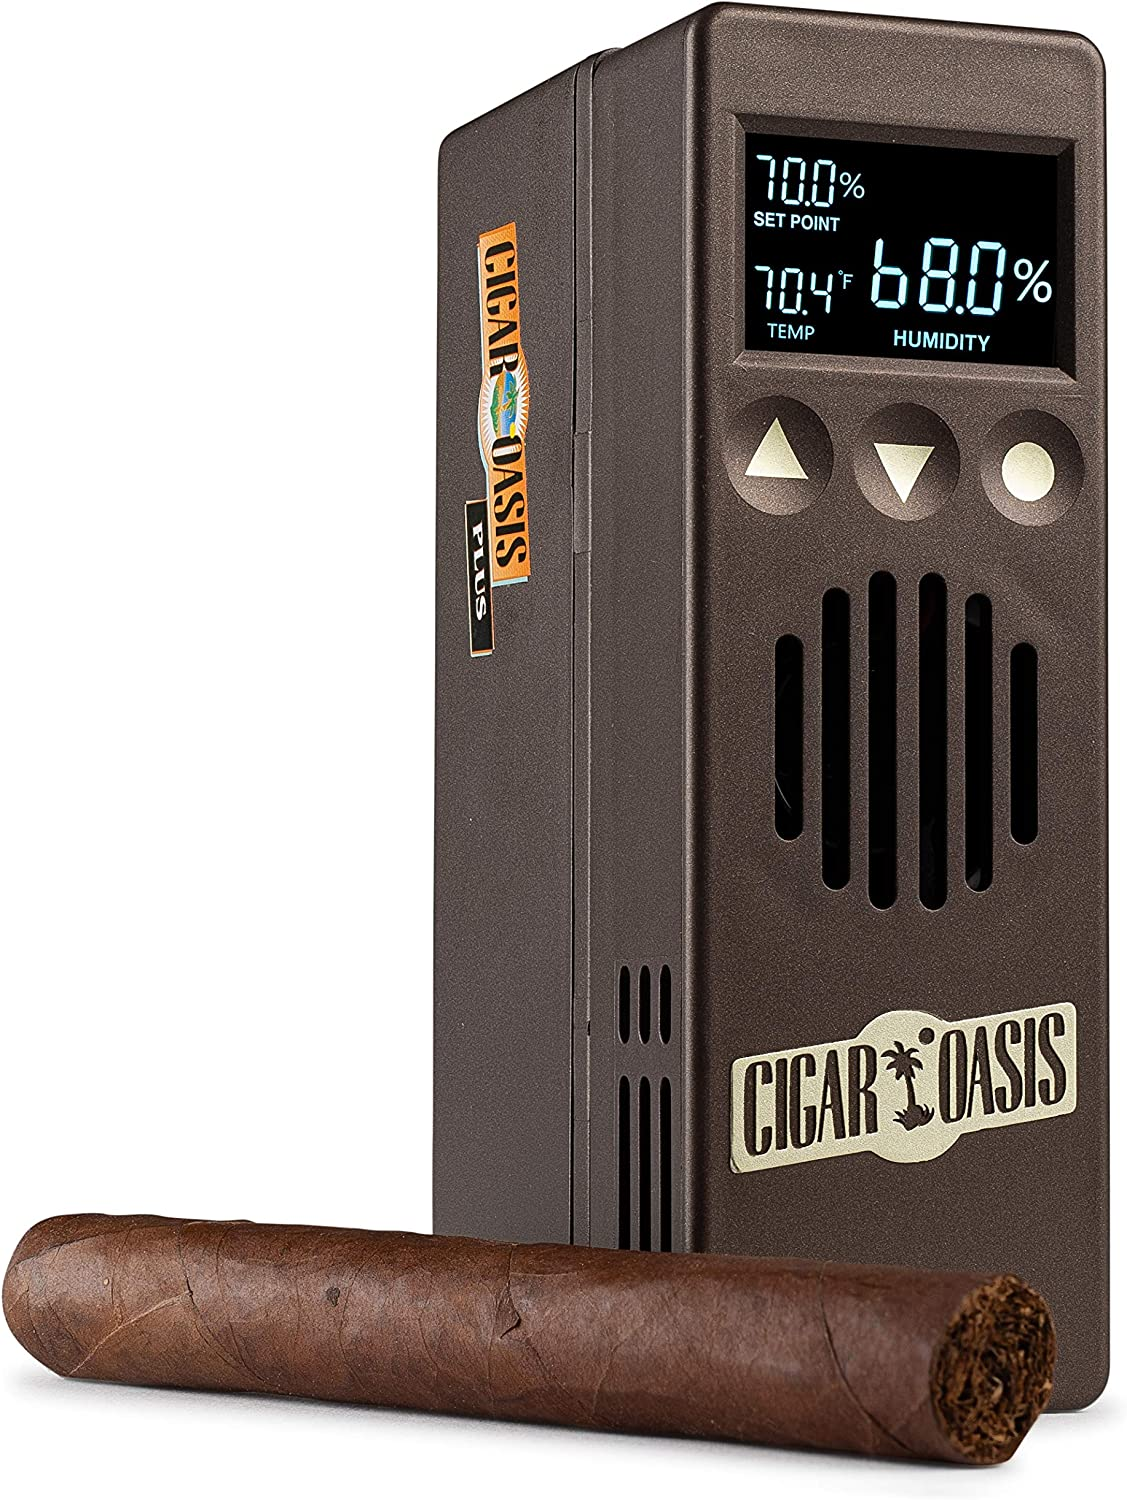 Cigar Oasis Plus 3.0 Electronic Humidifier for 4-10 cubic ft. (500-1500 Cigar Humidors) small cabinet & end-table humidors – The original set it and forget it humidification solution for any style cigar